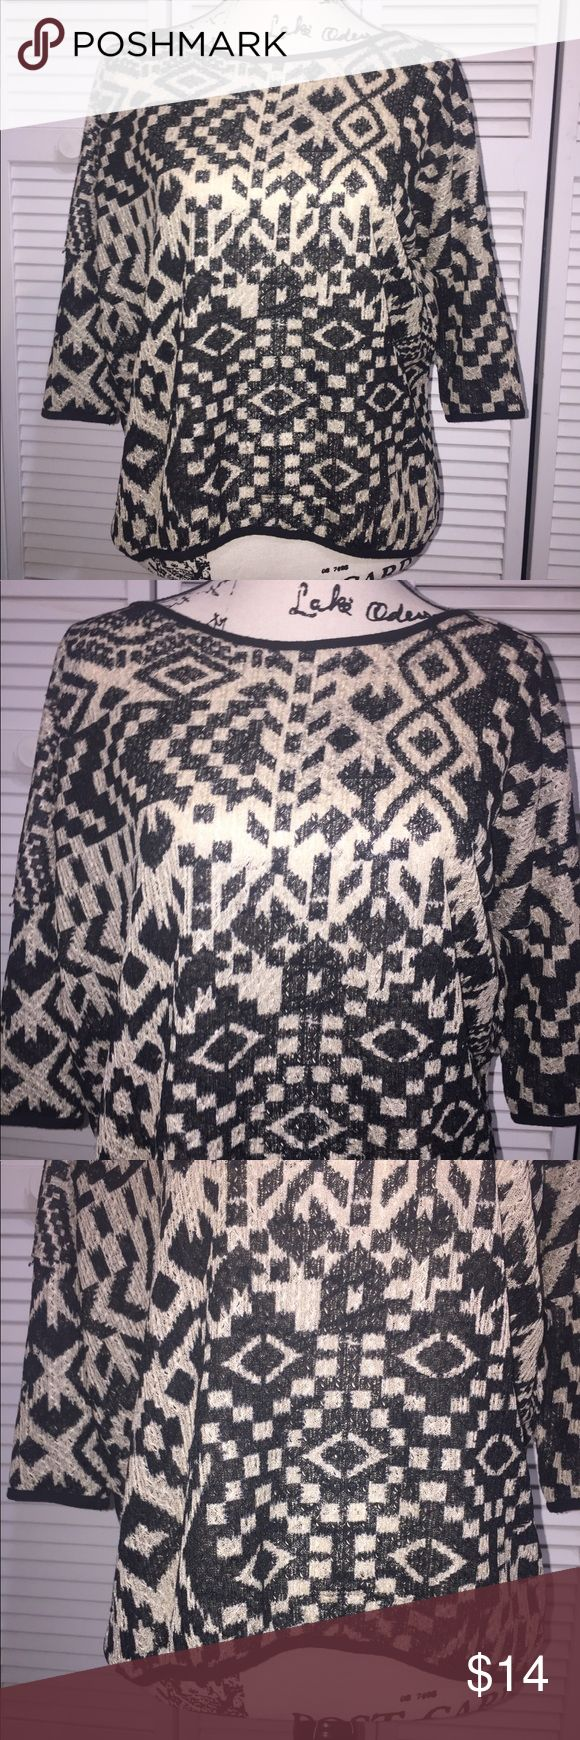 Wallpapher Black Aztec Blouse BRAND: Wallpapher   FABRIC: 100% Polyester   Condition: Excellent   SIZE: SMALL   Bust: 36   Shoulder to shoulder: 18    Length: 23    ALLERGY/SMELL CONCERNS? Pet free home/Smoke free home  FEEL FREE TO CHECK OUT ANY OF MY OTHER LISTINGS. THANKS, IN ADVANCE !  BEING A NEW SELLER I'D LIKE TO DO MY BEST TO SATISFY ALL CUSTOMERS NEEDS. PLEASE CONTACT ME   IF THERE ARE ANY ISSUES OR OTHER CONCERNS BEFORE LEAVING NEGATIVE/NEUTRAL FEEDBACK.   GREATLY…